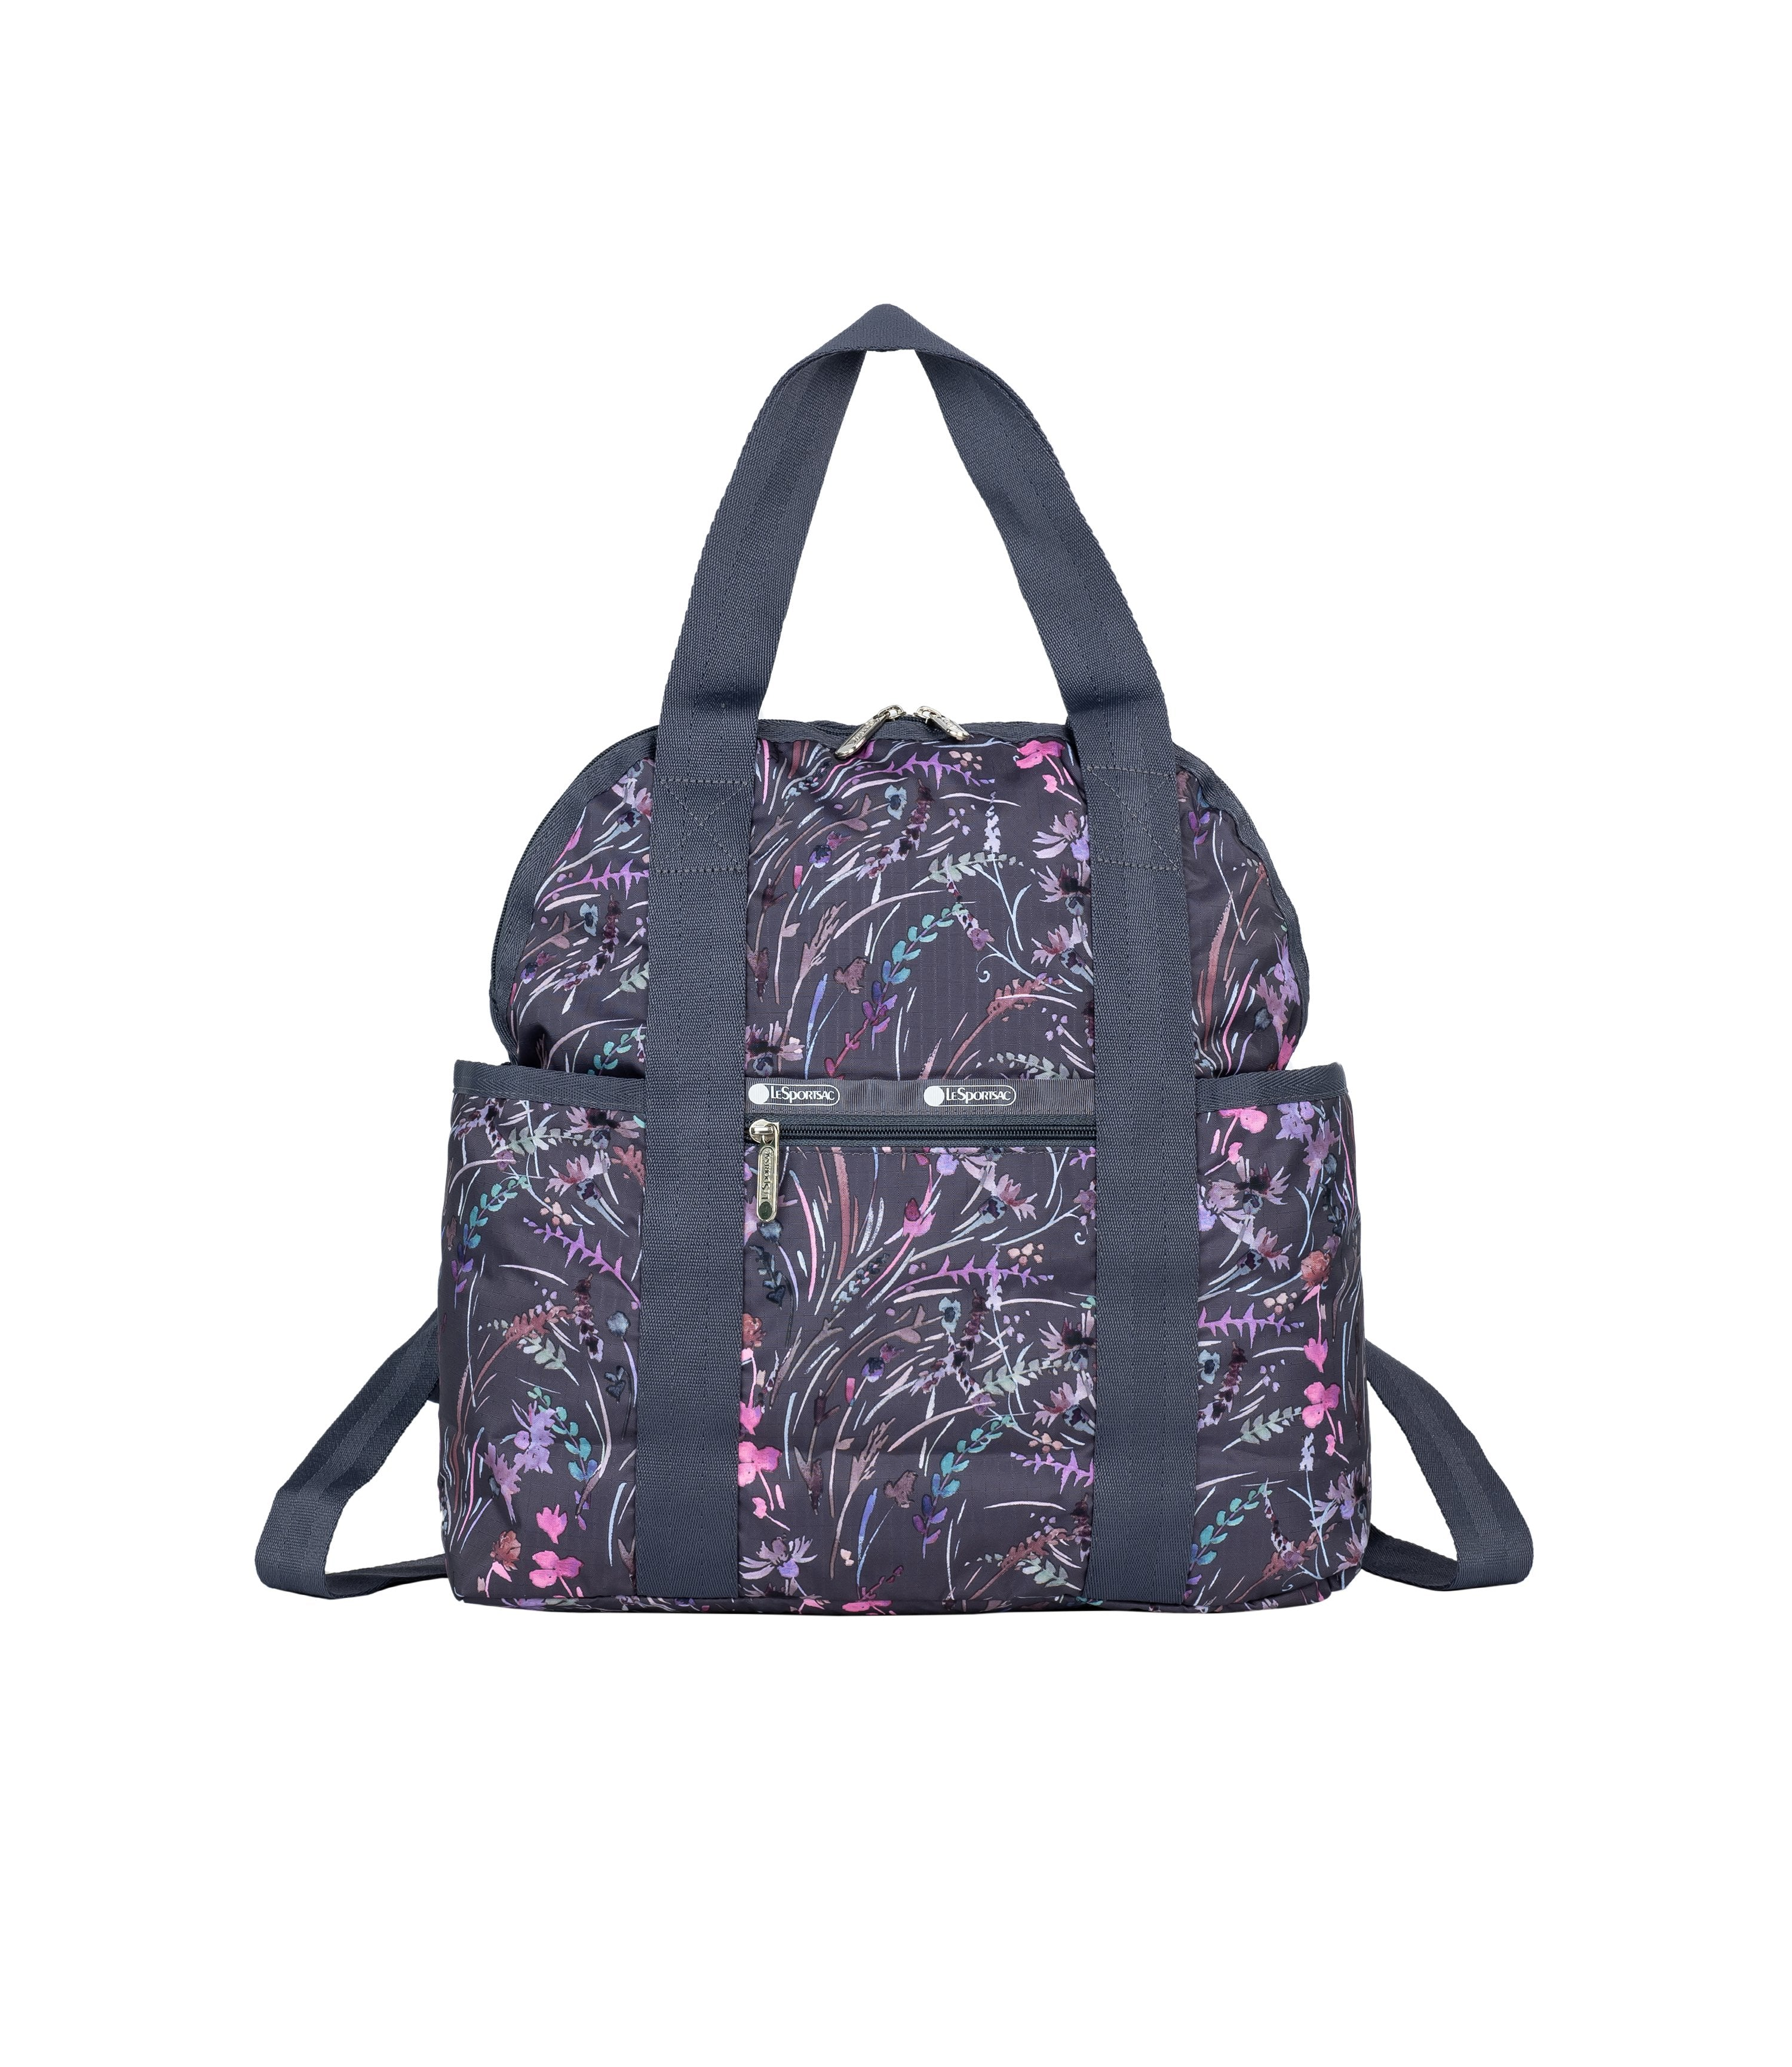 LeSportsac - Backpacks - Double Trouble Backpack - Windswept Floral Shadow print